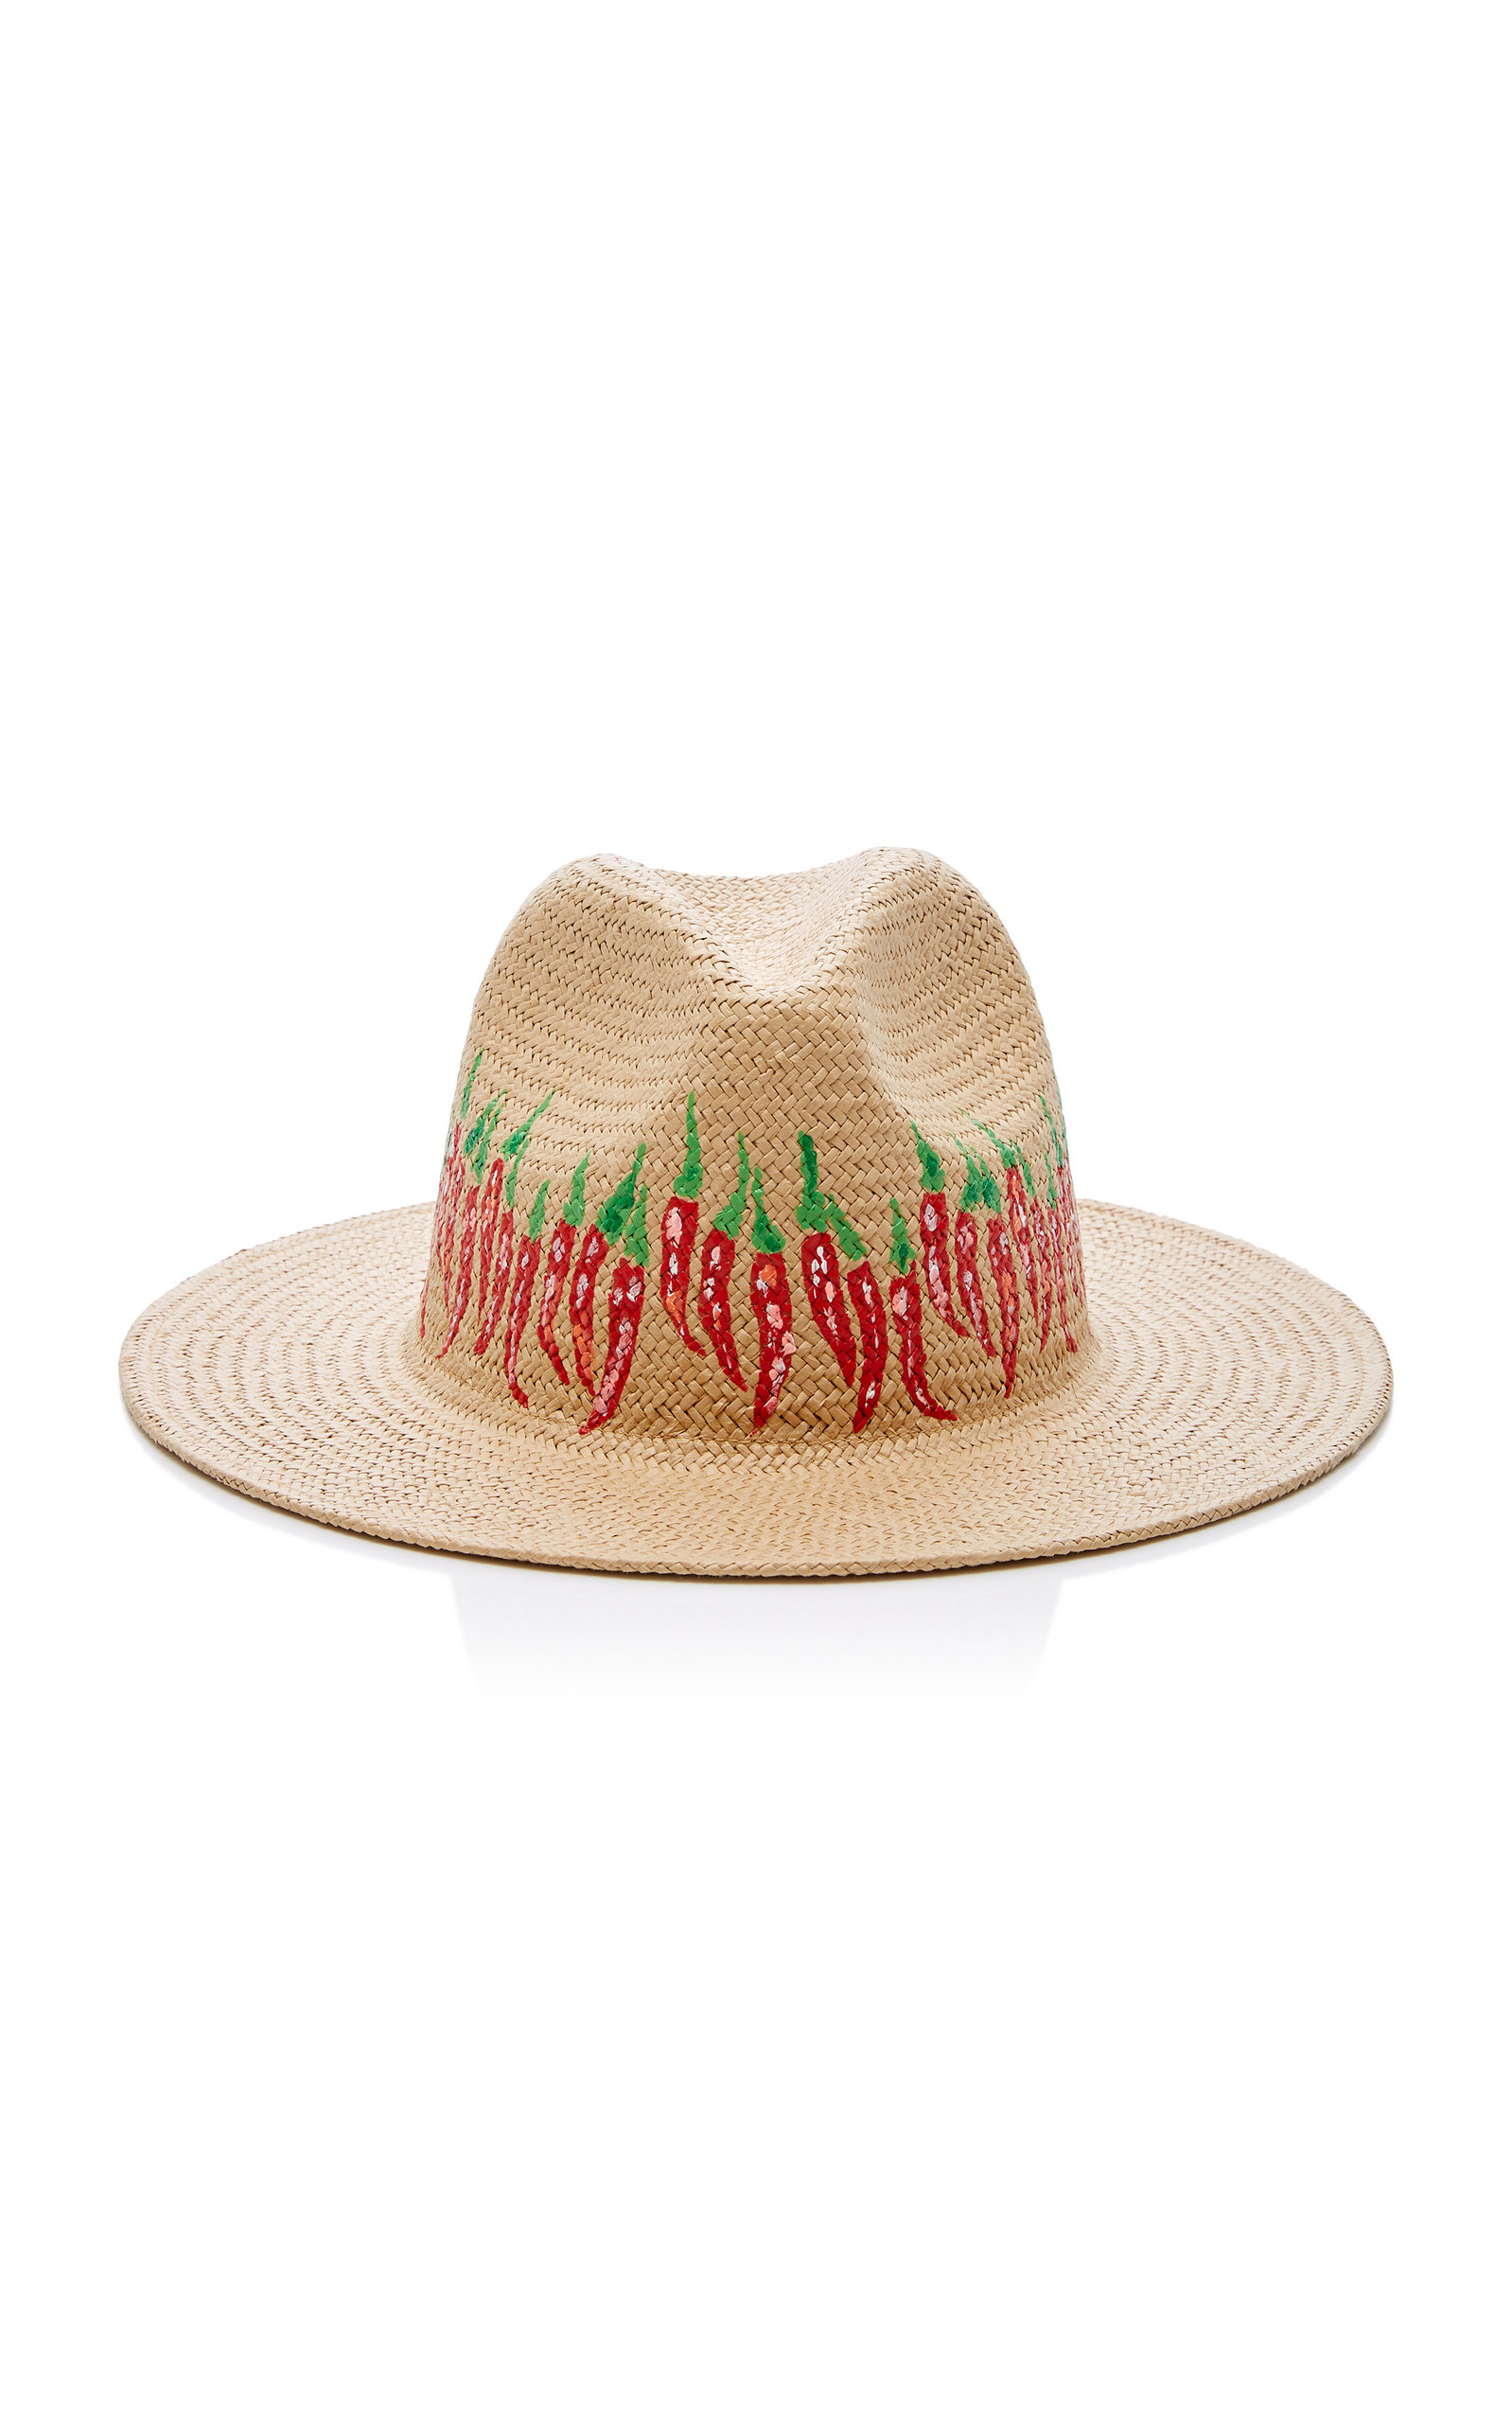 Outlet Real Colombia Panama Hat in Tan. - size M (also in S) Sensi Studio Pick A Best Online Outlet Affordable Free Shipping Geniue Stockist Free Shipping Cheap Price DxqxhaEC